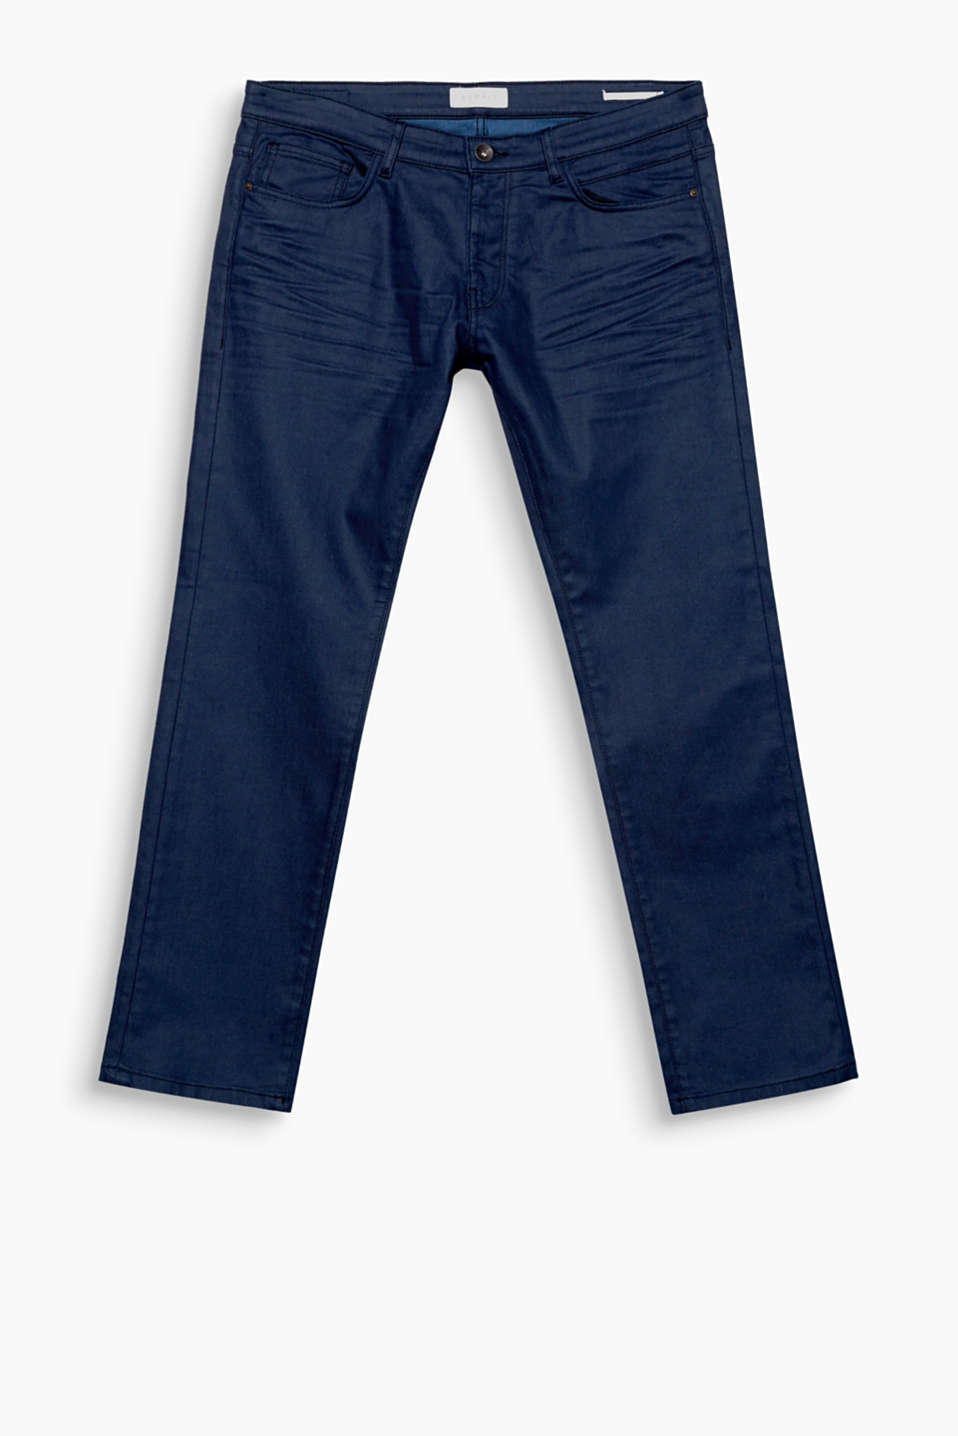 These five pocket jeans with added stretch for comfort will be an elegant style fave because of their coated finish.